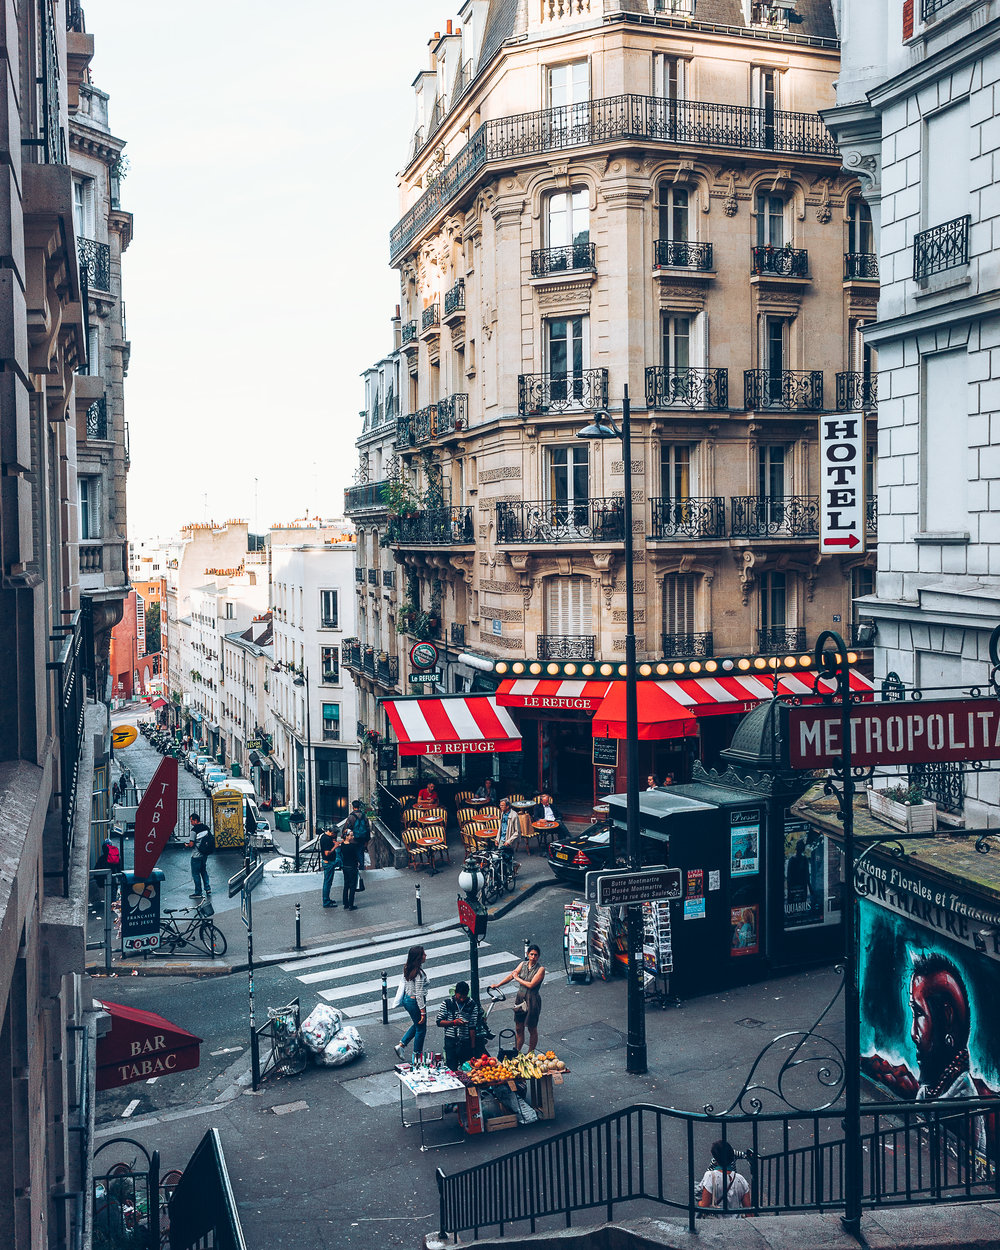 Parisian street life during the  #DxOOneTrip , shot with the  @dxoone  camera